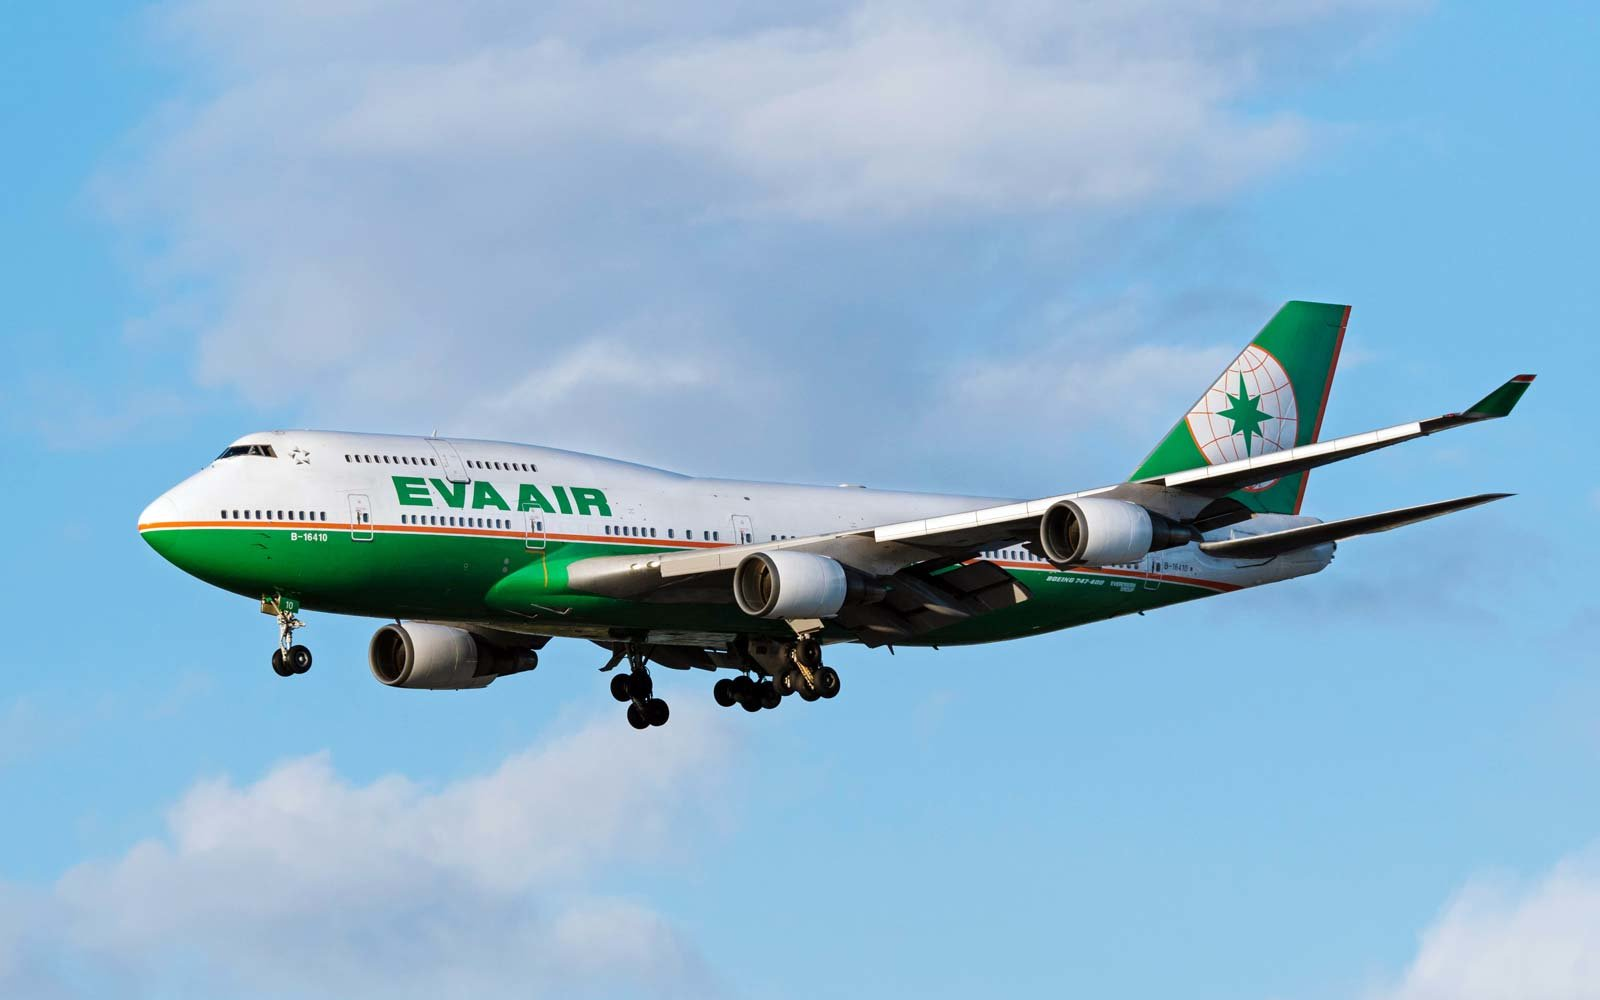 EVA Air Boeing 747 in flight